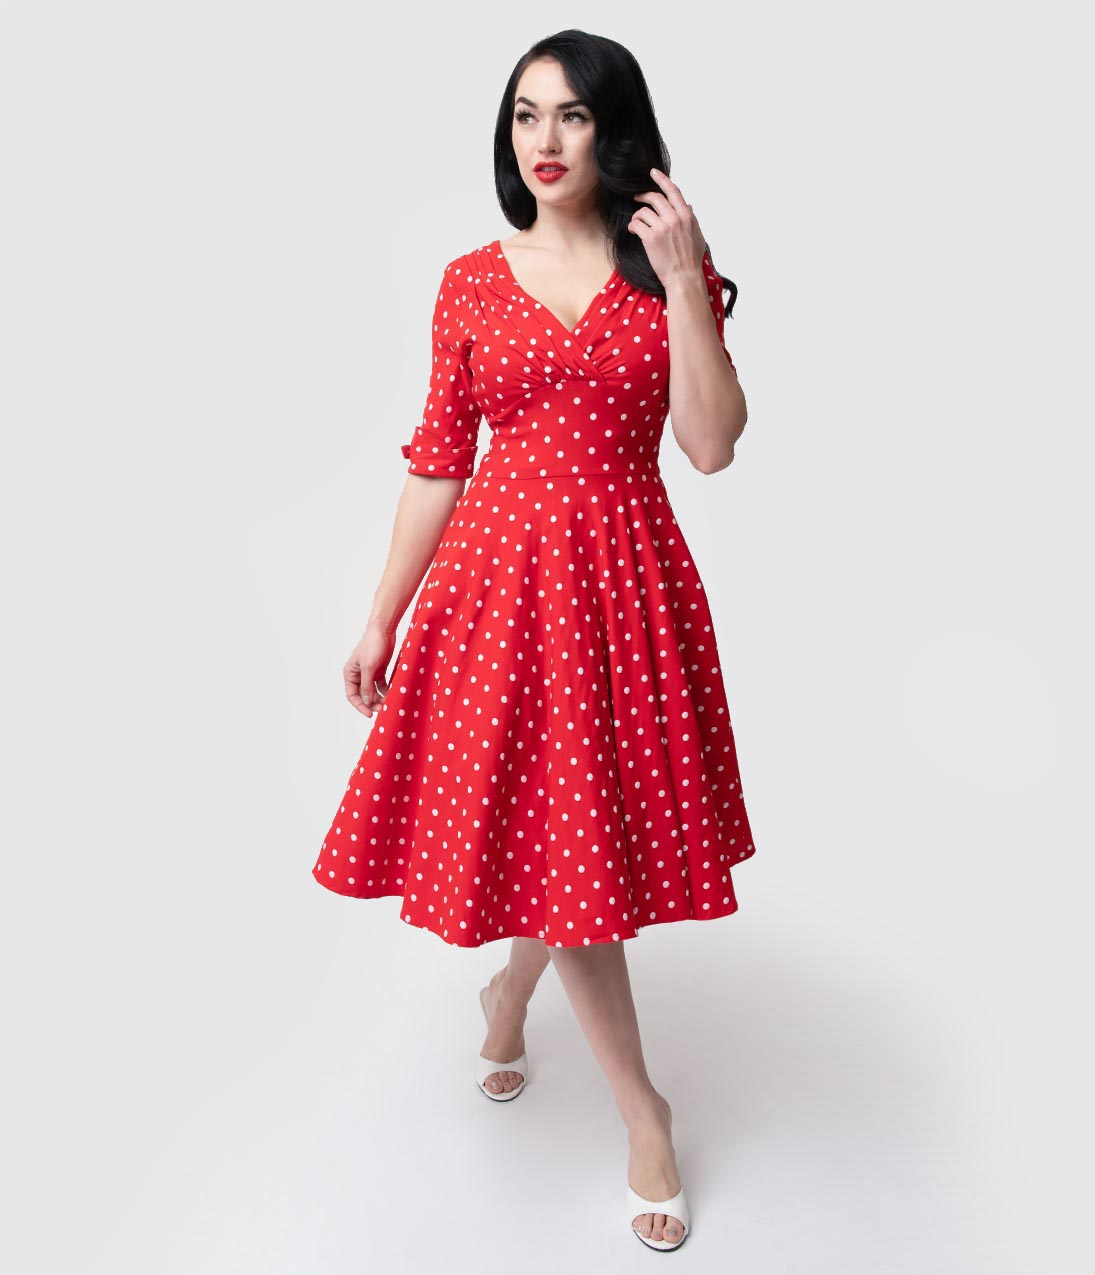 ae0e45b2f91 Vintage Polka Dot Dresses – 50s Spotty and Ditsy Prints Unique Vintage  1950S Red White Dot